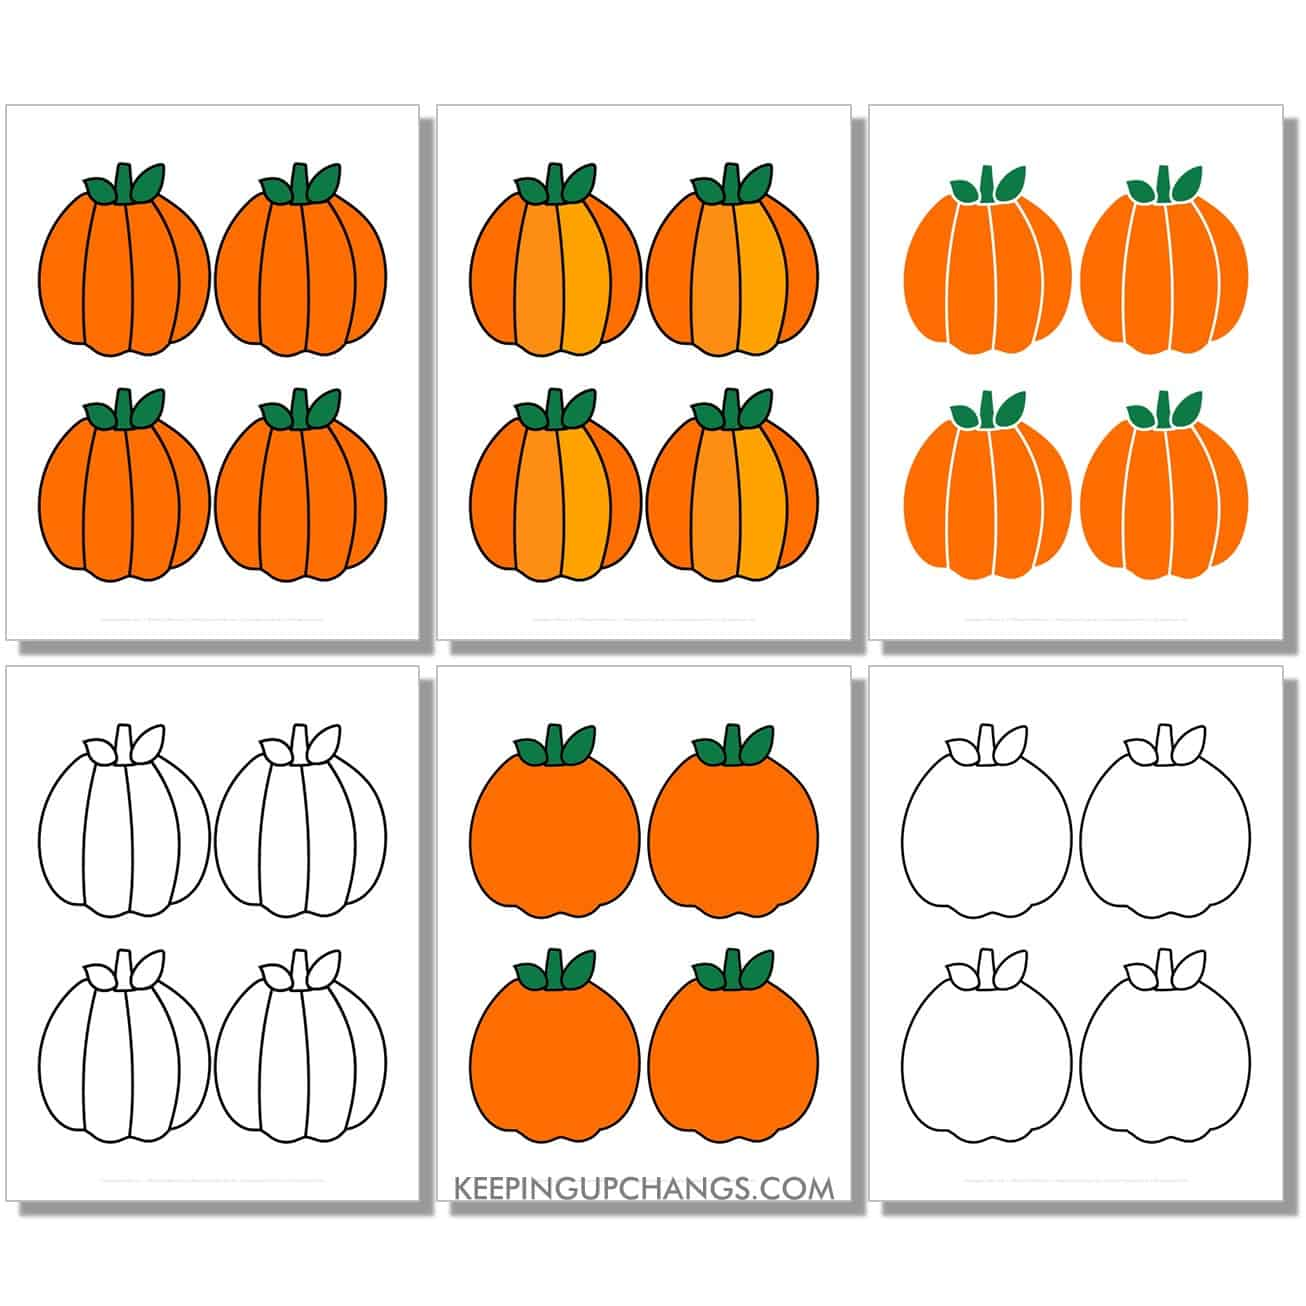 free small round pumpkin in color, black and white, silhouette, 4 to a page.